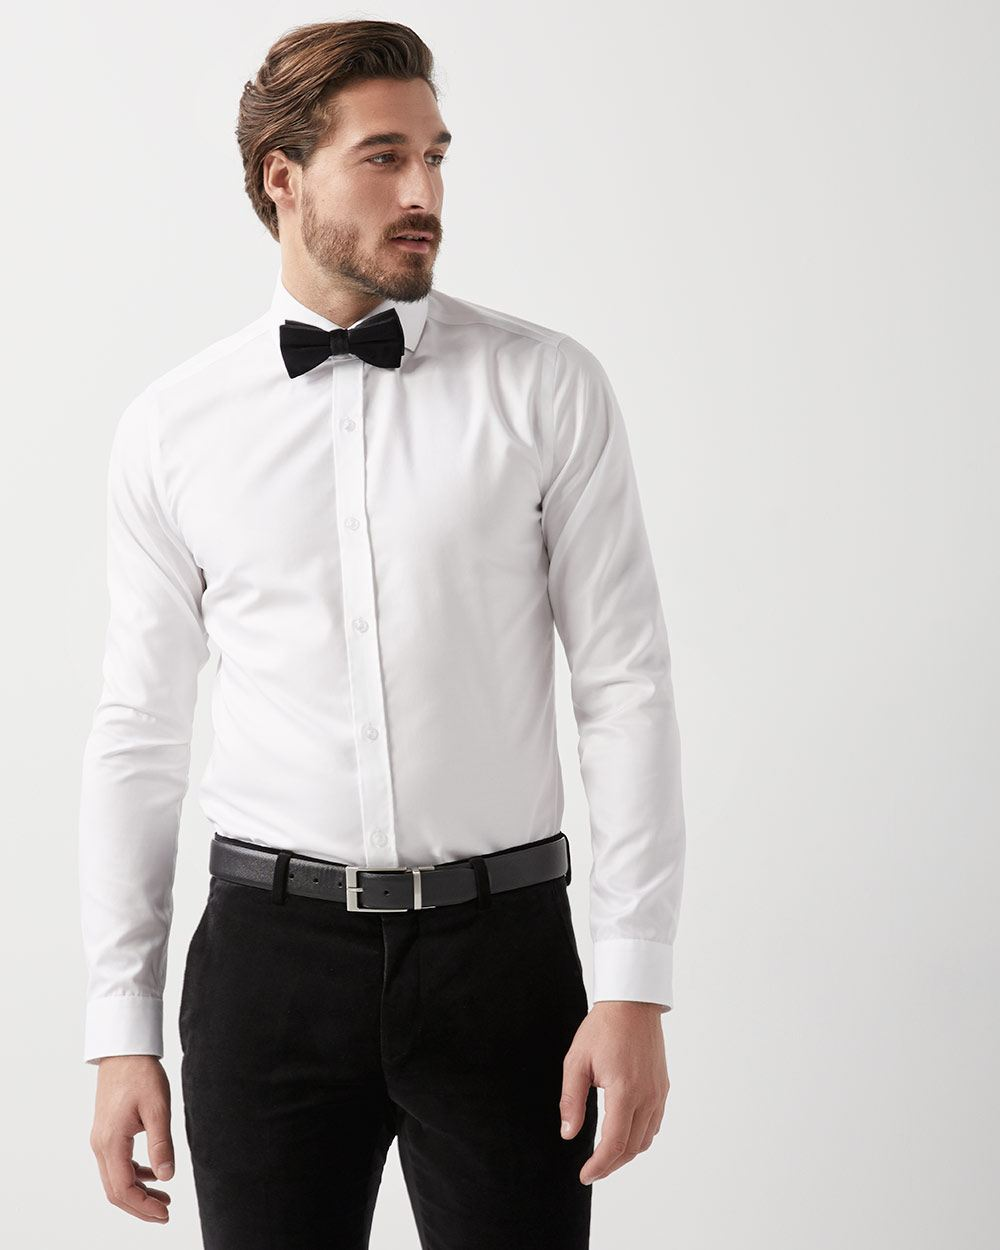 Slim fit white dress shirt with wide spread collar